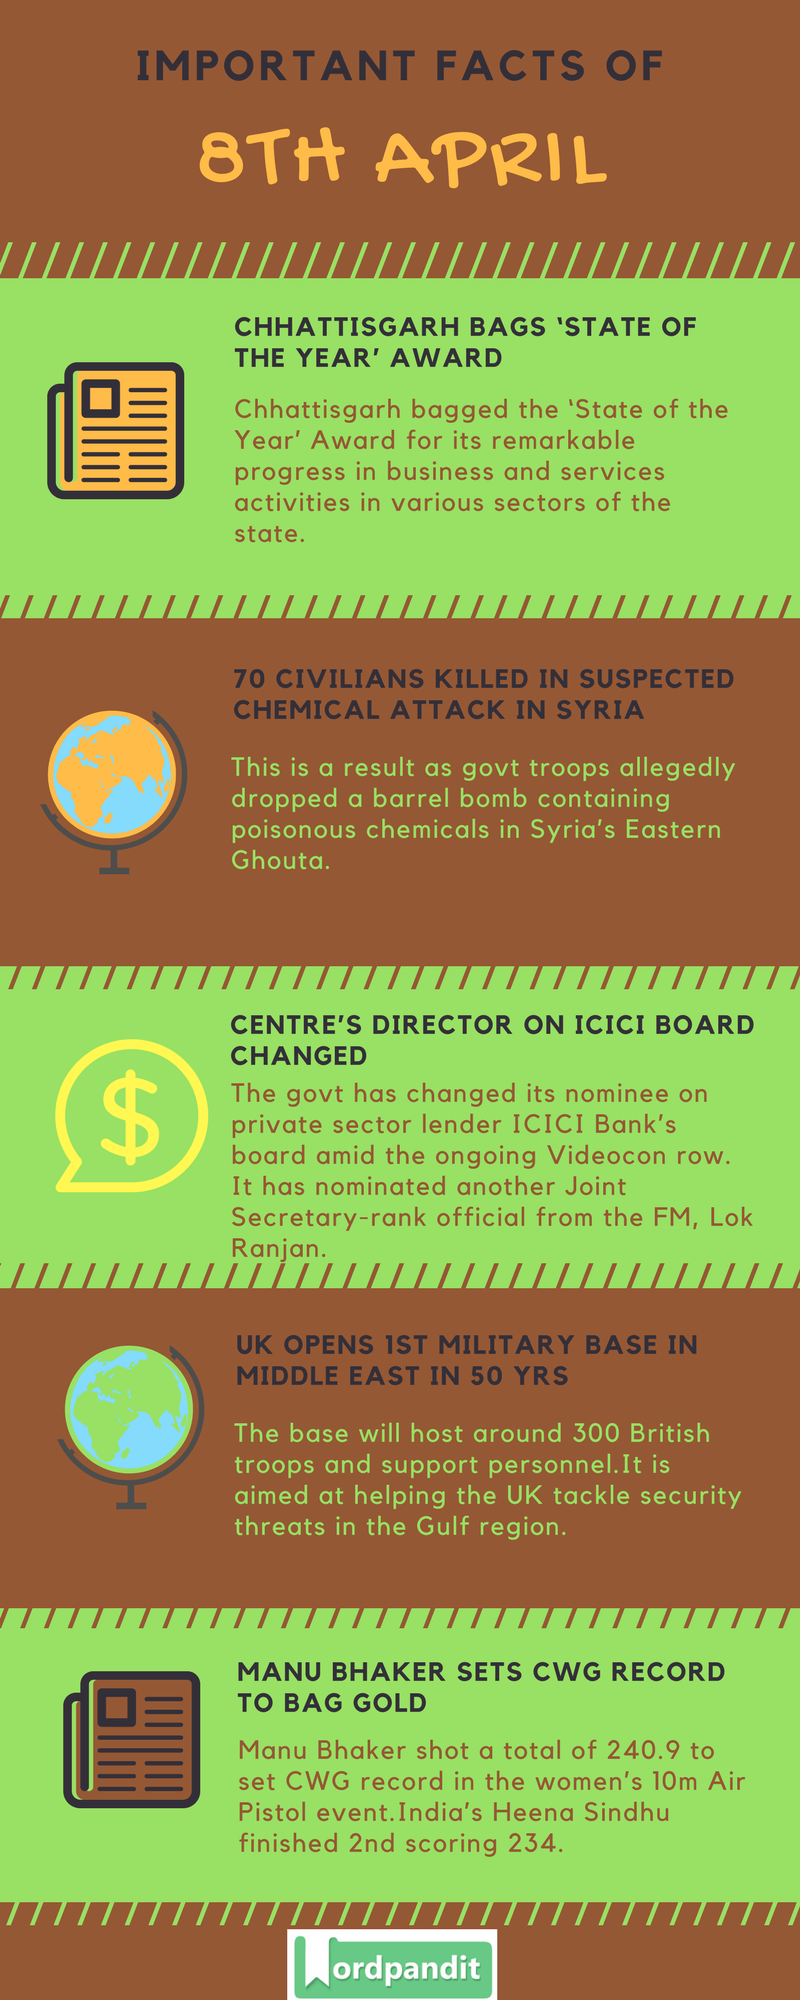 Daily Current Affairs 8 April 2018 Current Affairs Quiz April 8 2018 Current Affairs Infographic